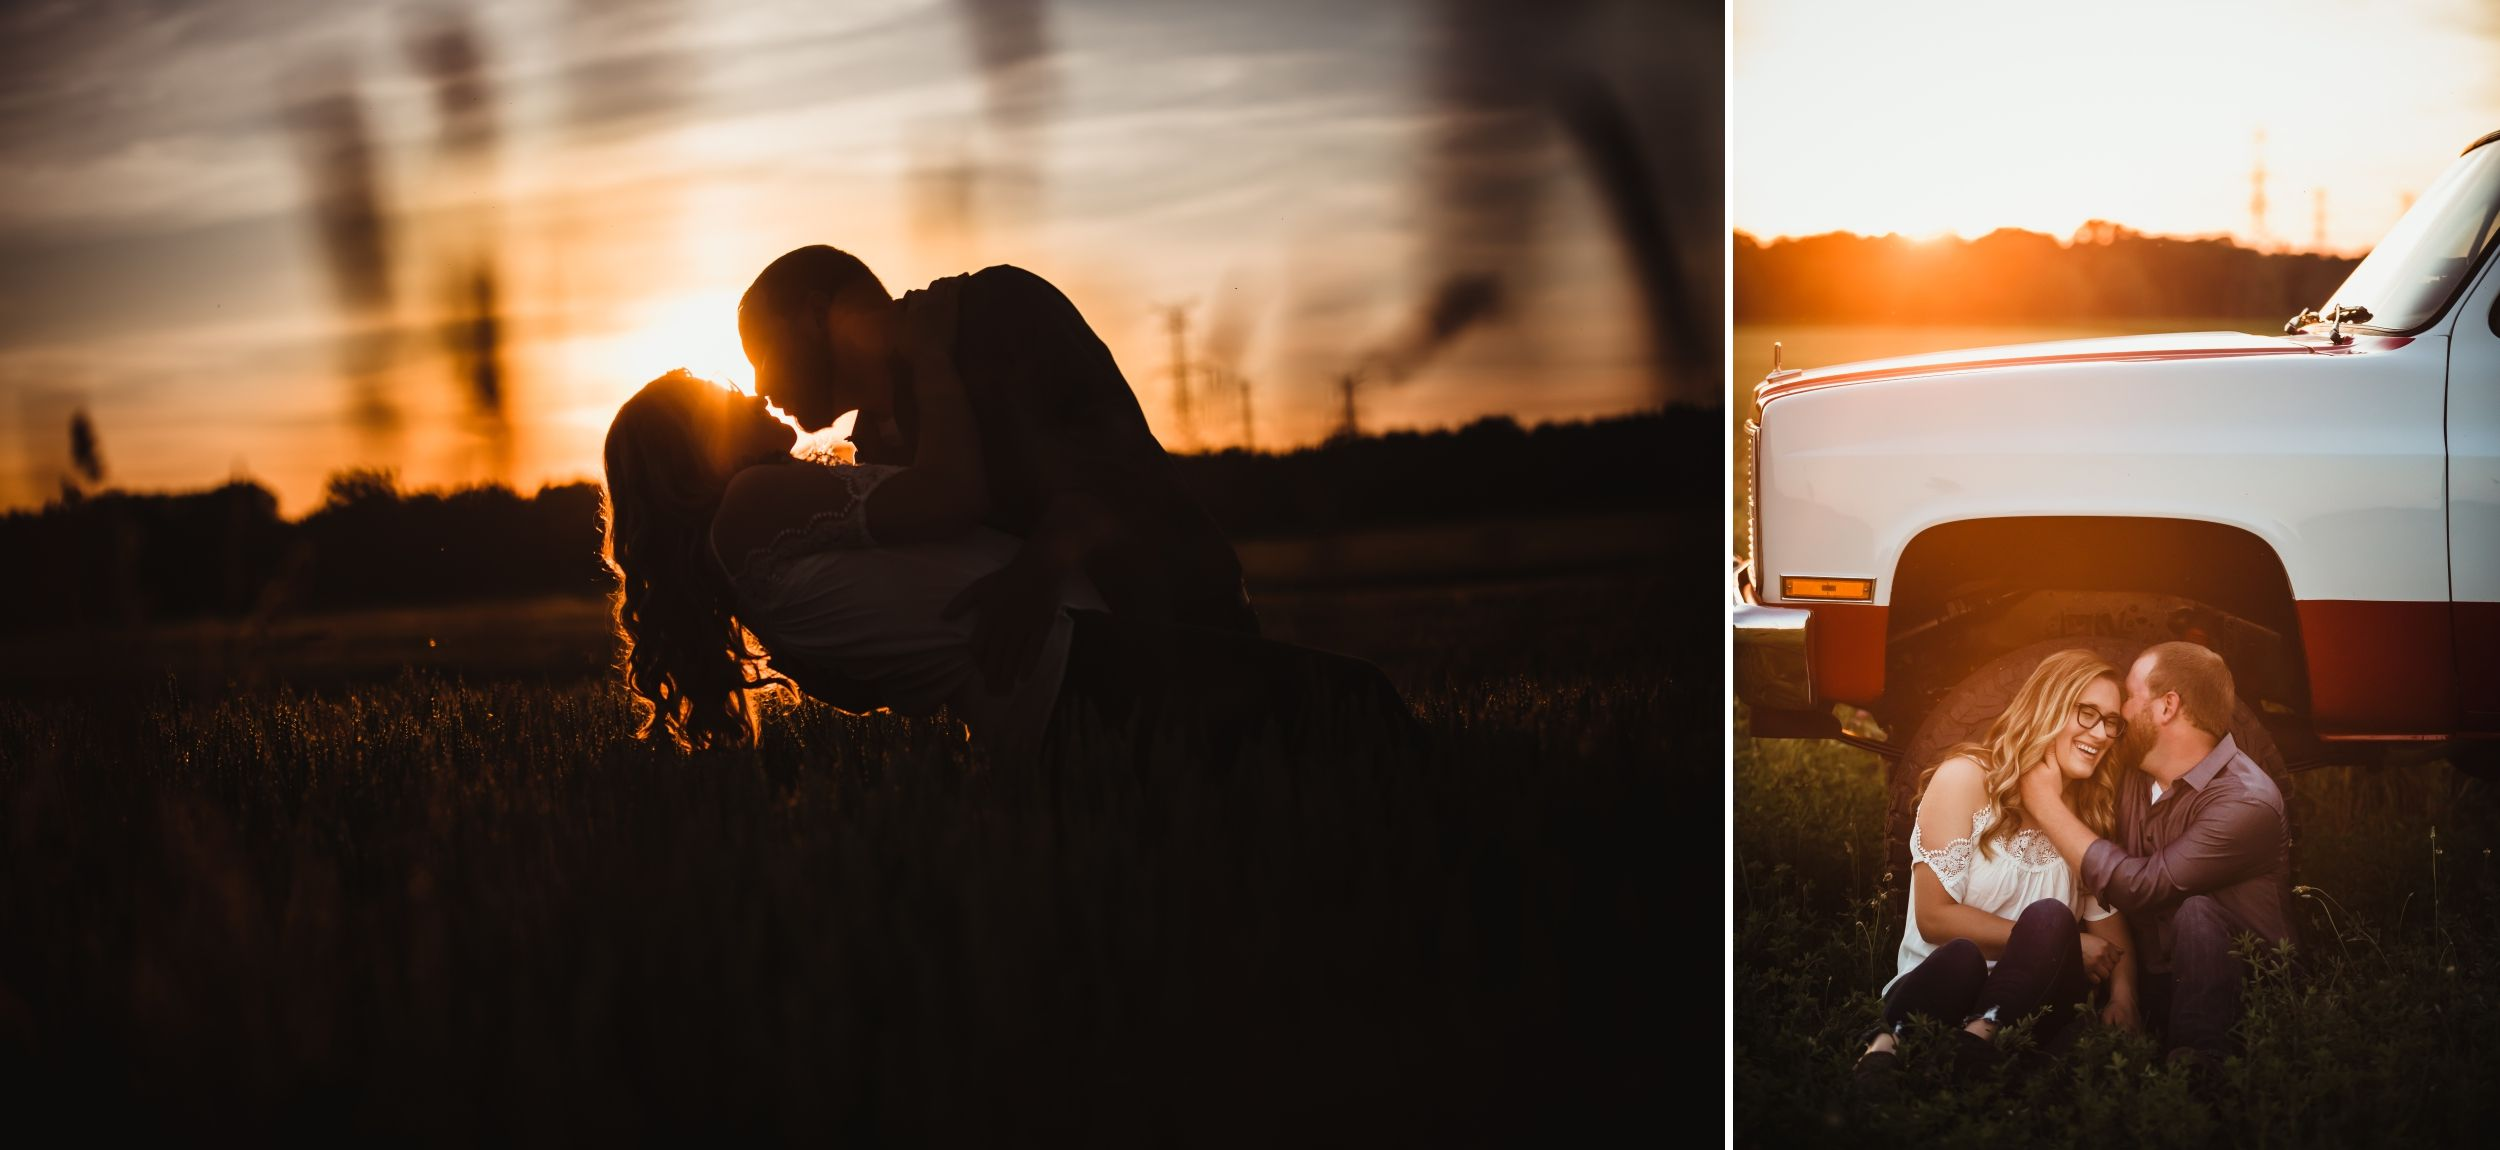 A silhouette of a man dipping a woman in a field at sunset then they sit in front of a truck laughing.